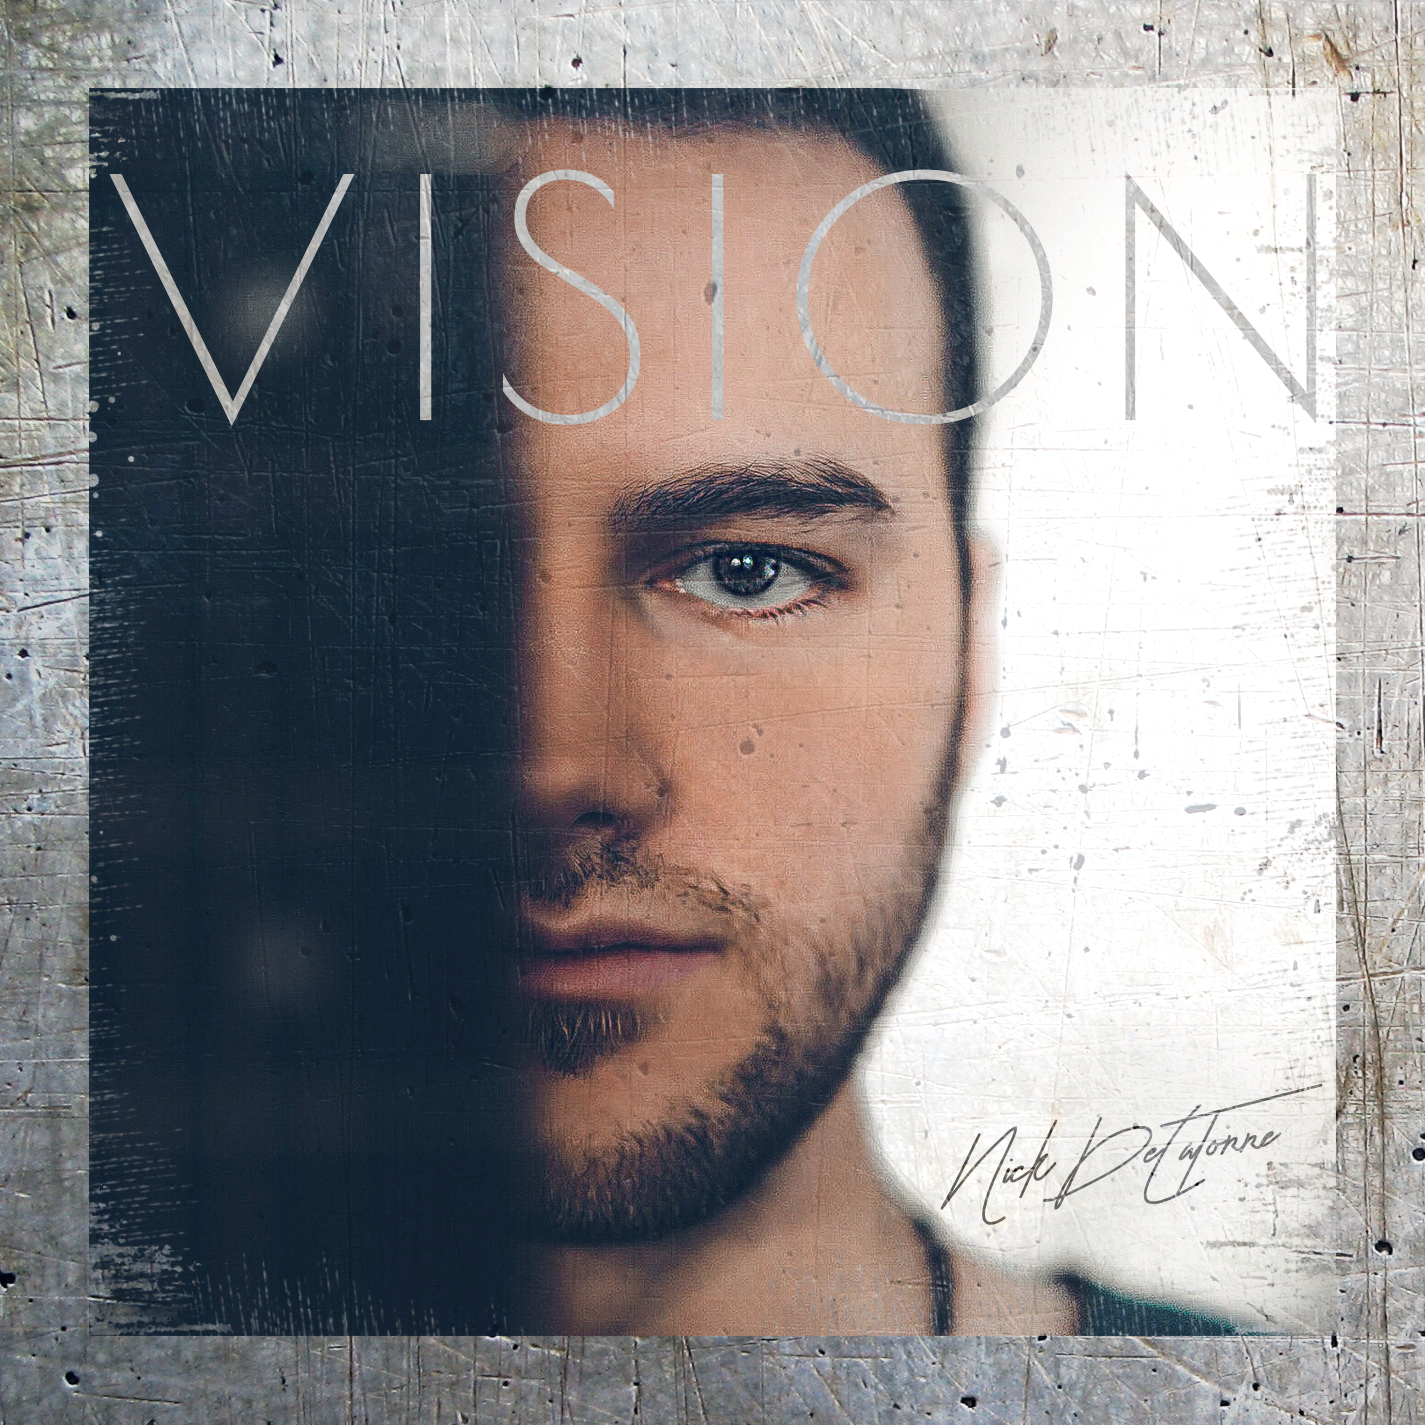 VISION album cover.png